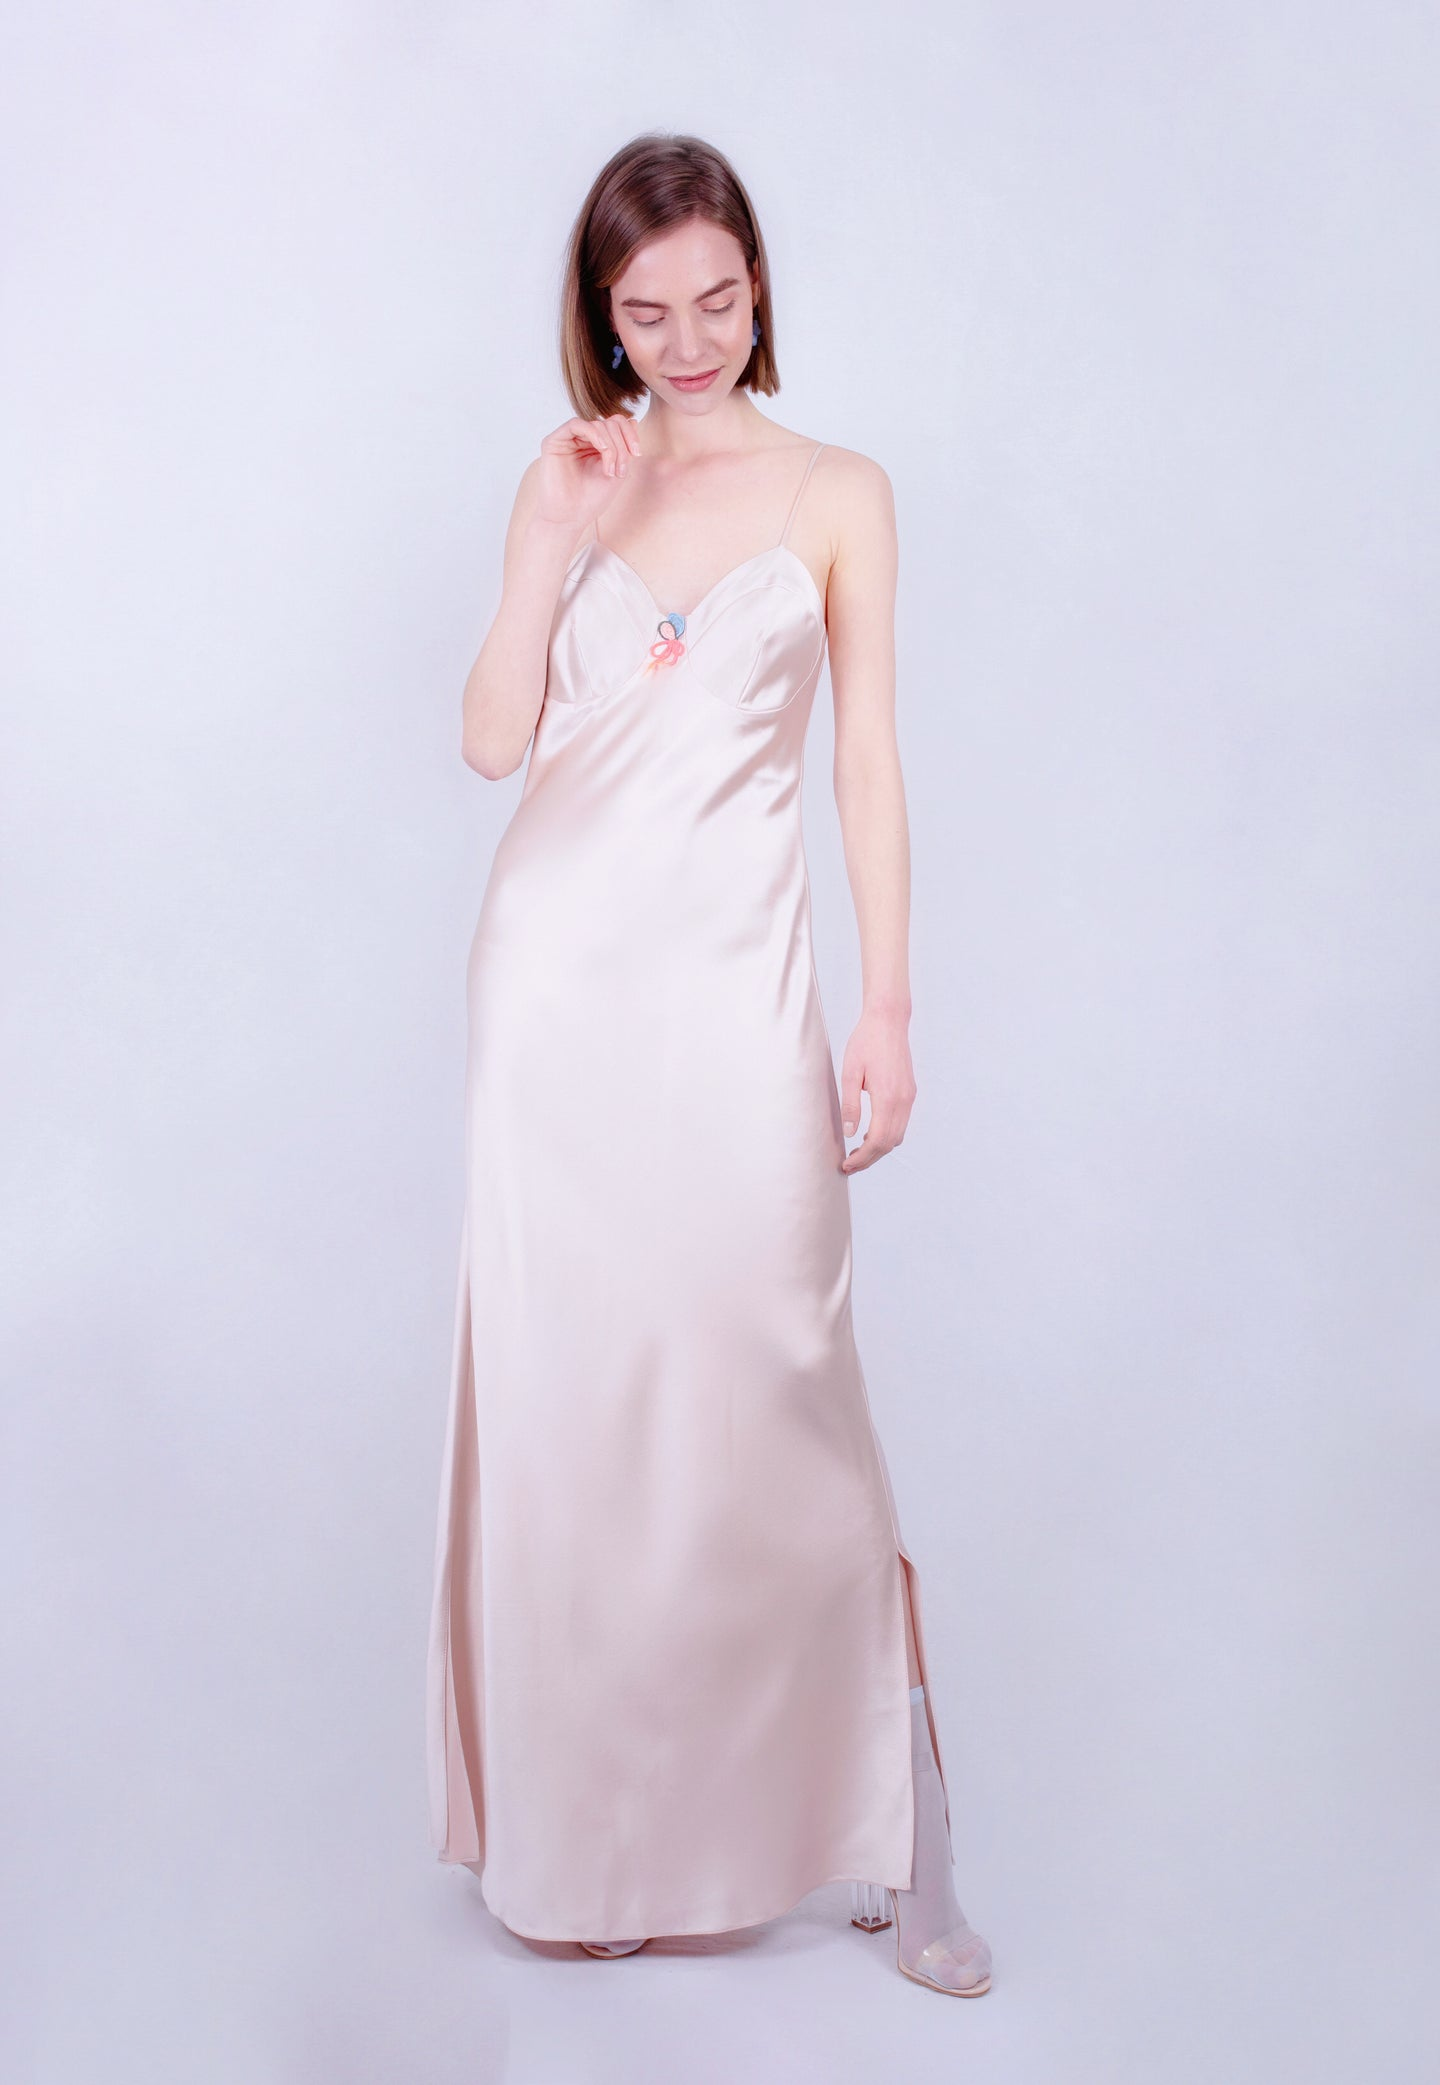 Holographic Oyster Maxi dress